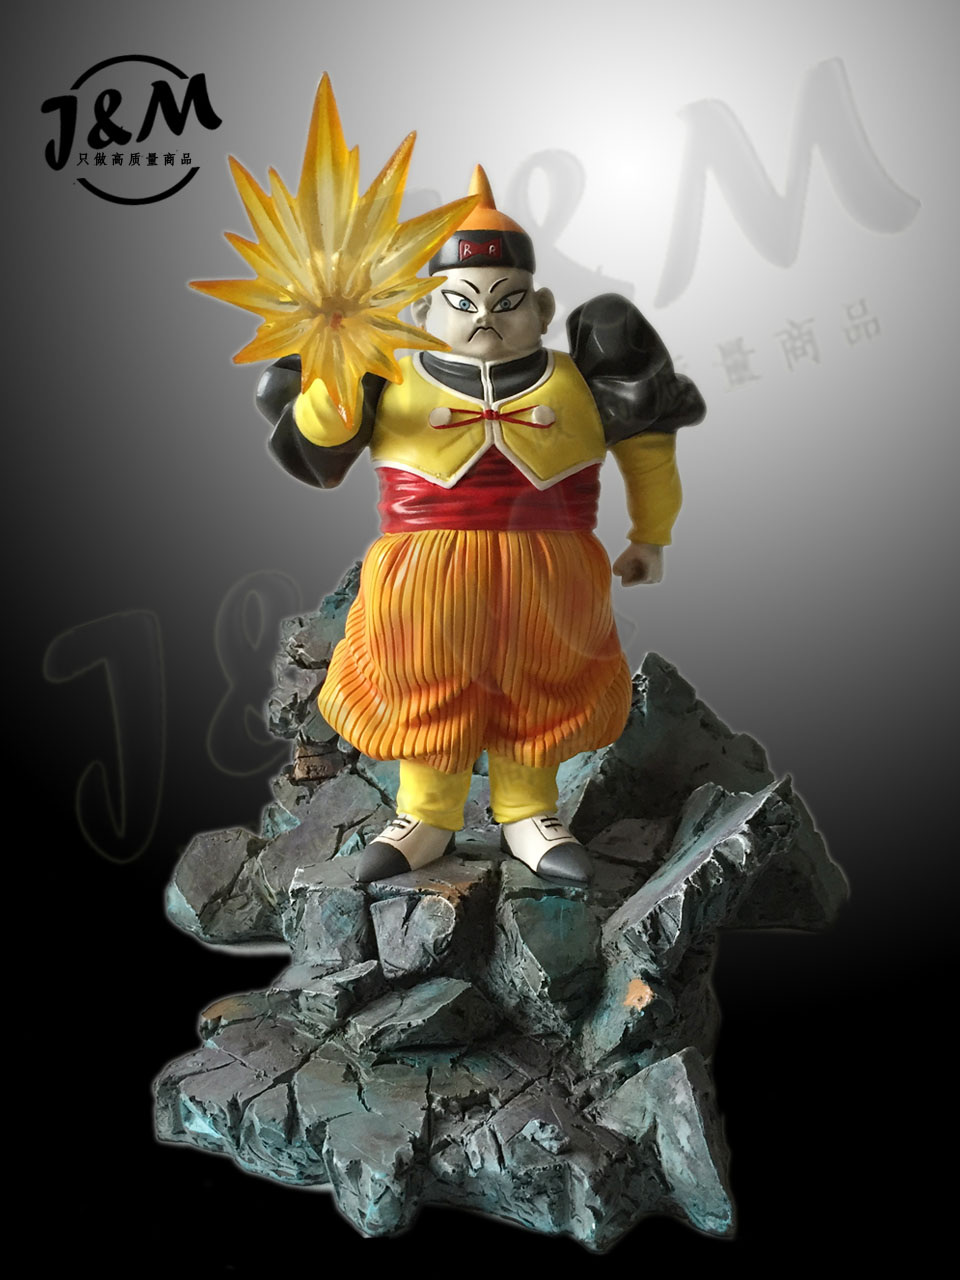 MODEL FANS JM Dragon Ball Z 22cm Android 19 gk resin action figure toy for Collection [show z store] [pre order] fanstoys ft 22 koot kup fans toys ft22 ft 22 cup transformation action figure